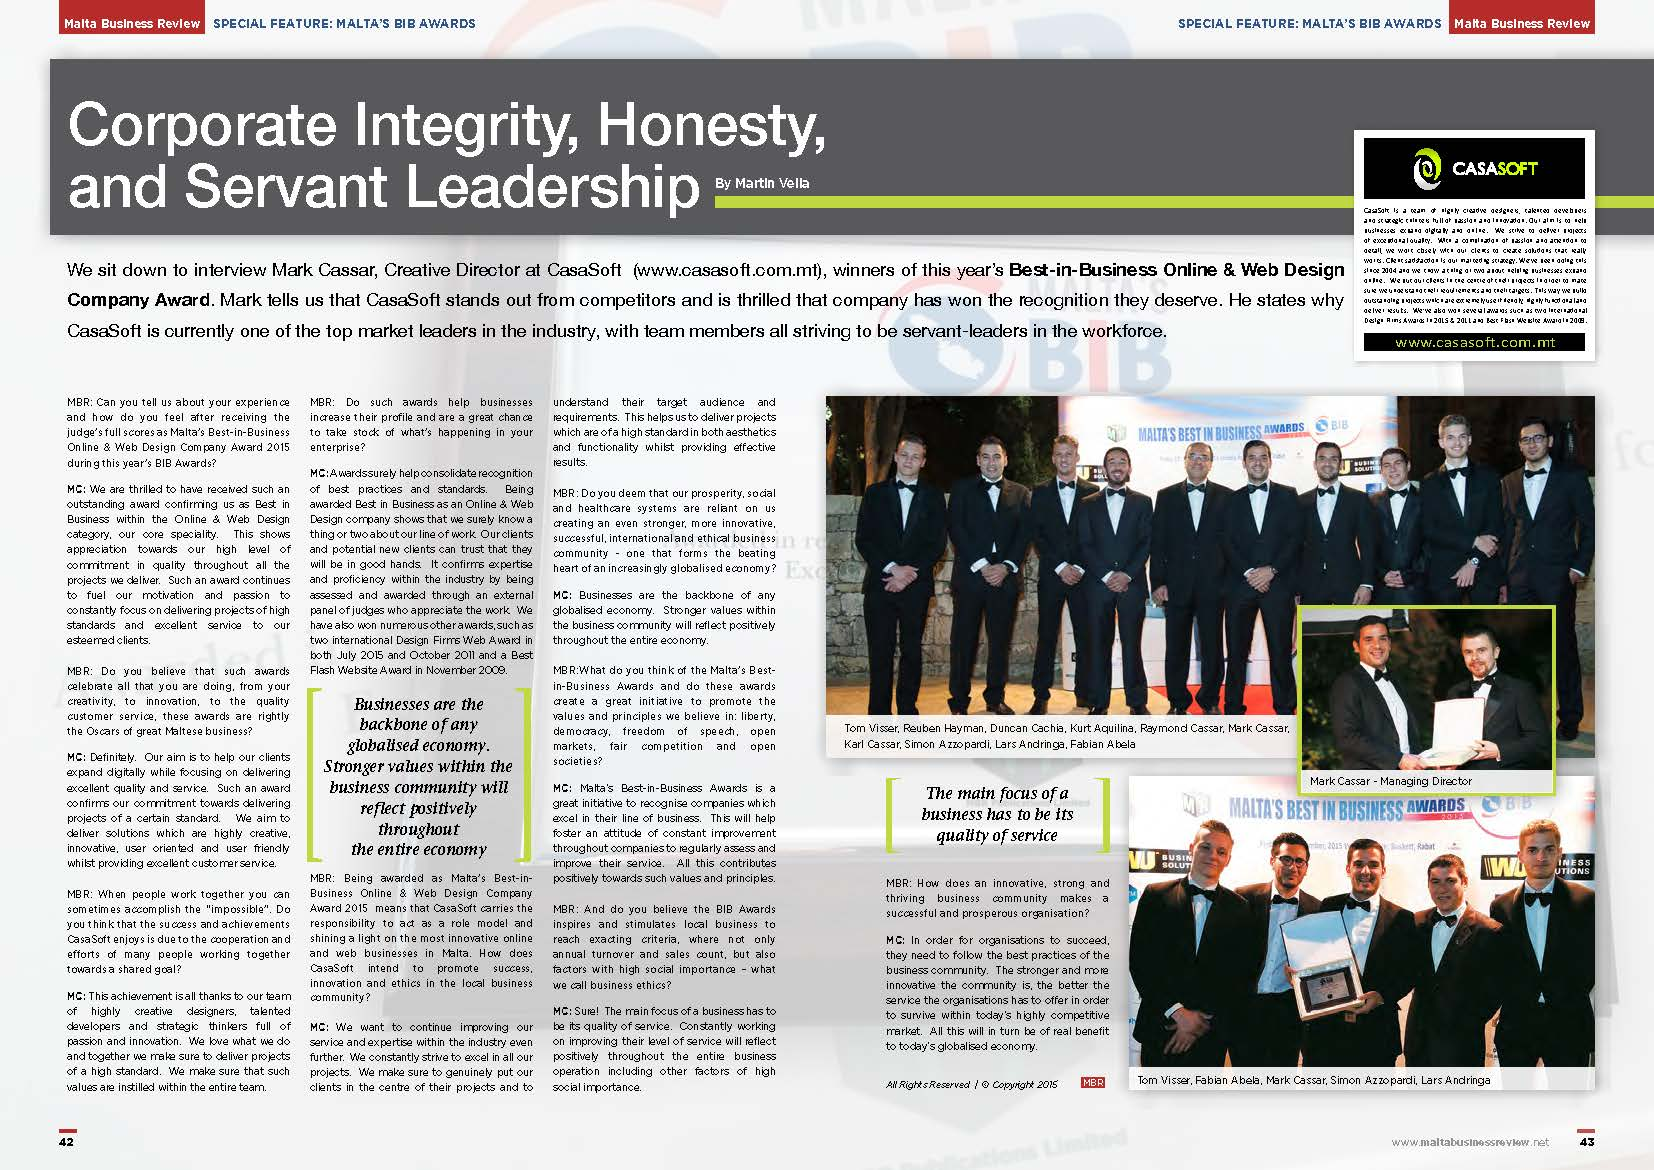 CasaSoft Malta's Best in Business Online & Web Design Agency interview in the Malta Business Review in The Malta Independent on Sunday